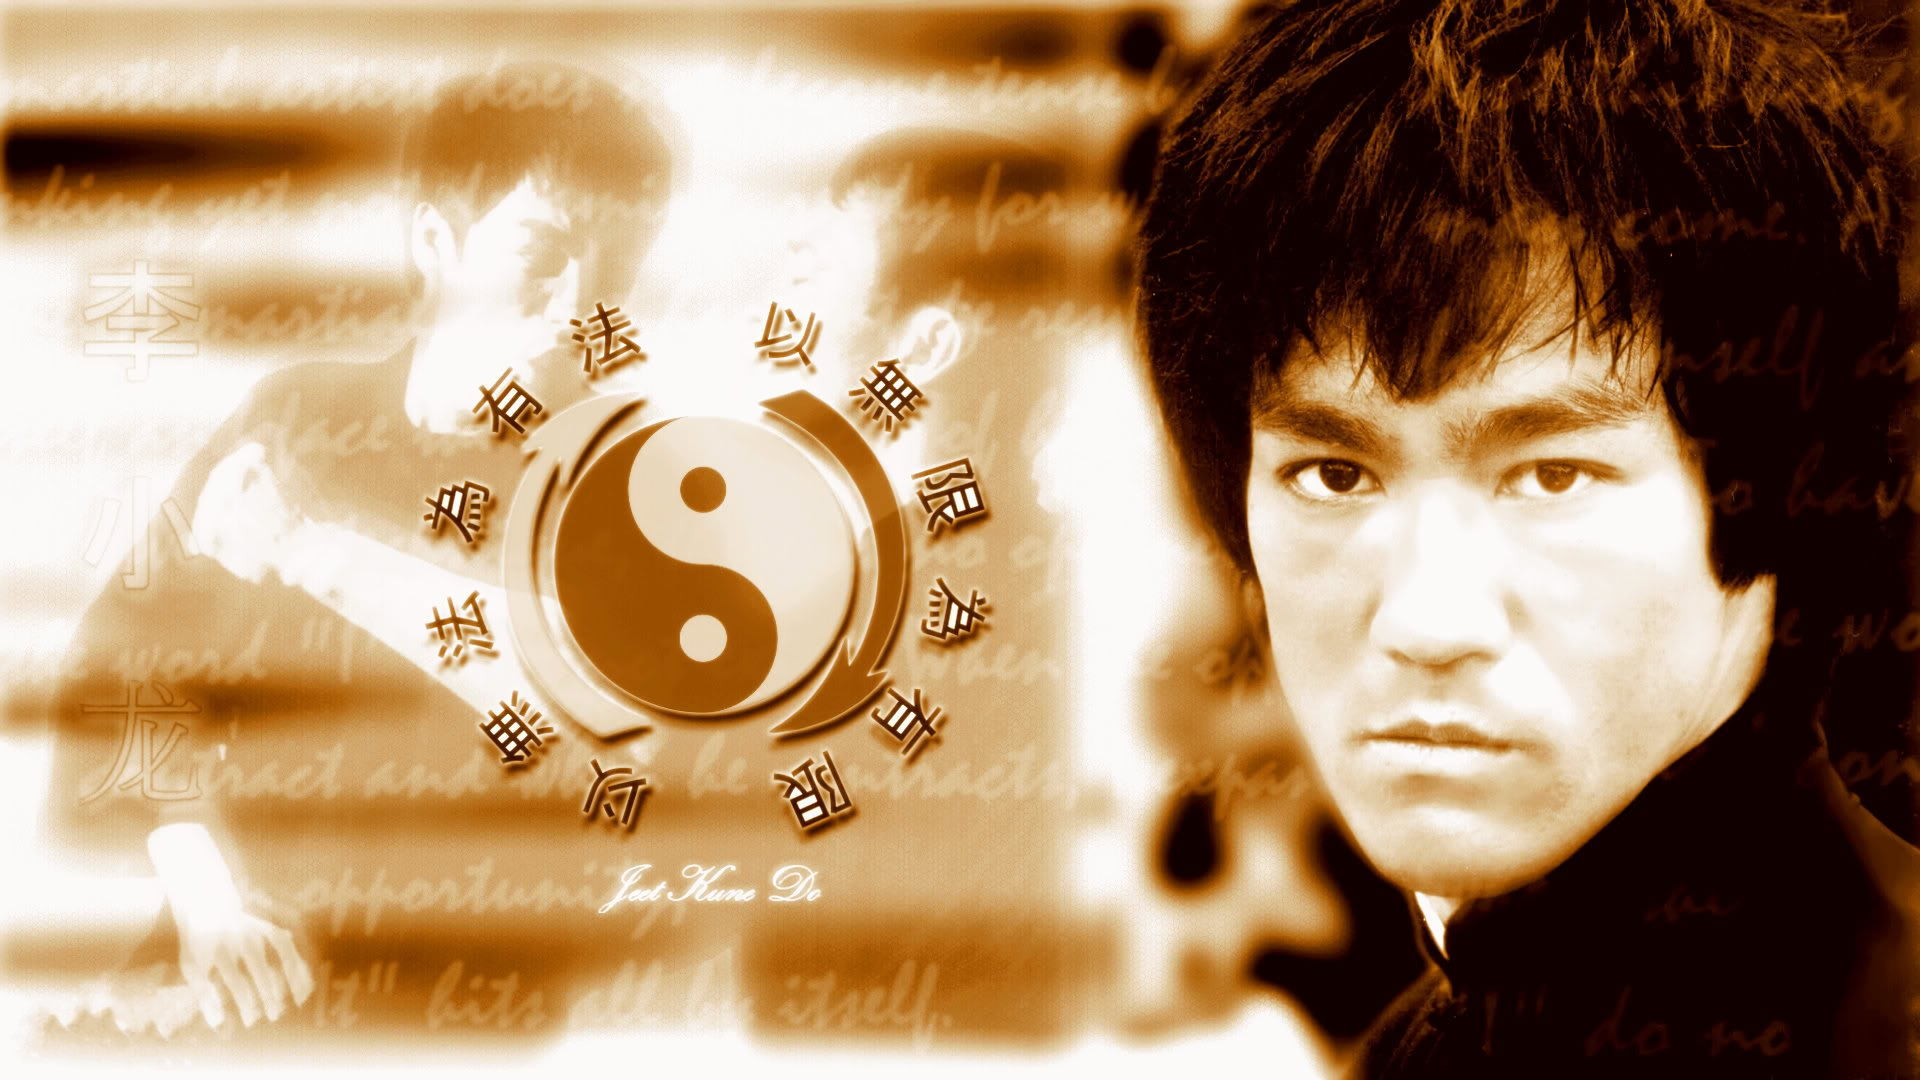 Bruce Lee Hd Wallpaper Background Image 1920x1080 Id 493872